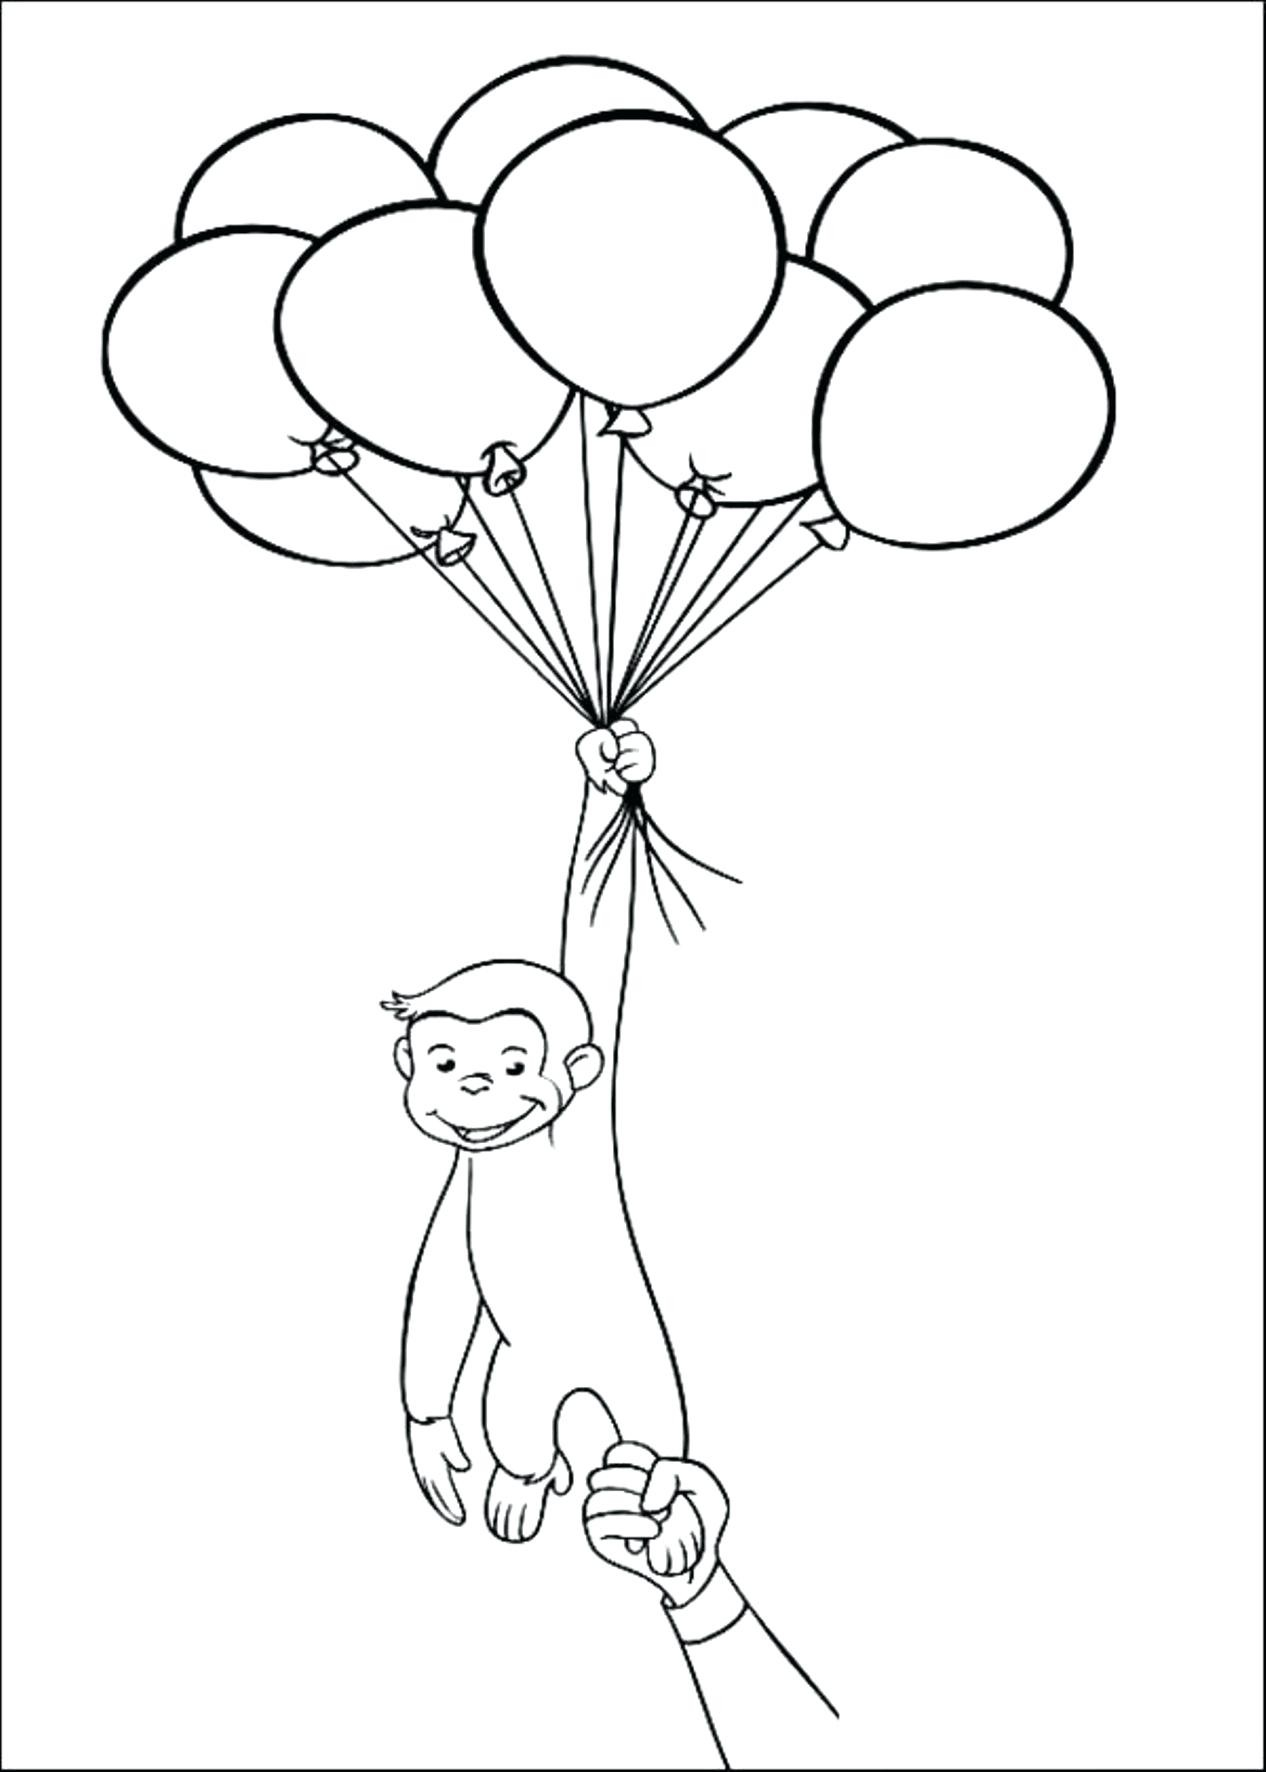 Hot Air Balloon Template Printable New Coloring Pages Balloon Download Of Hot Air Balloon Coloring Page Collection